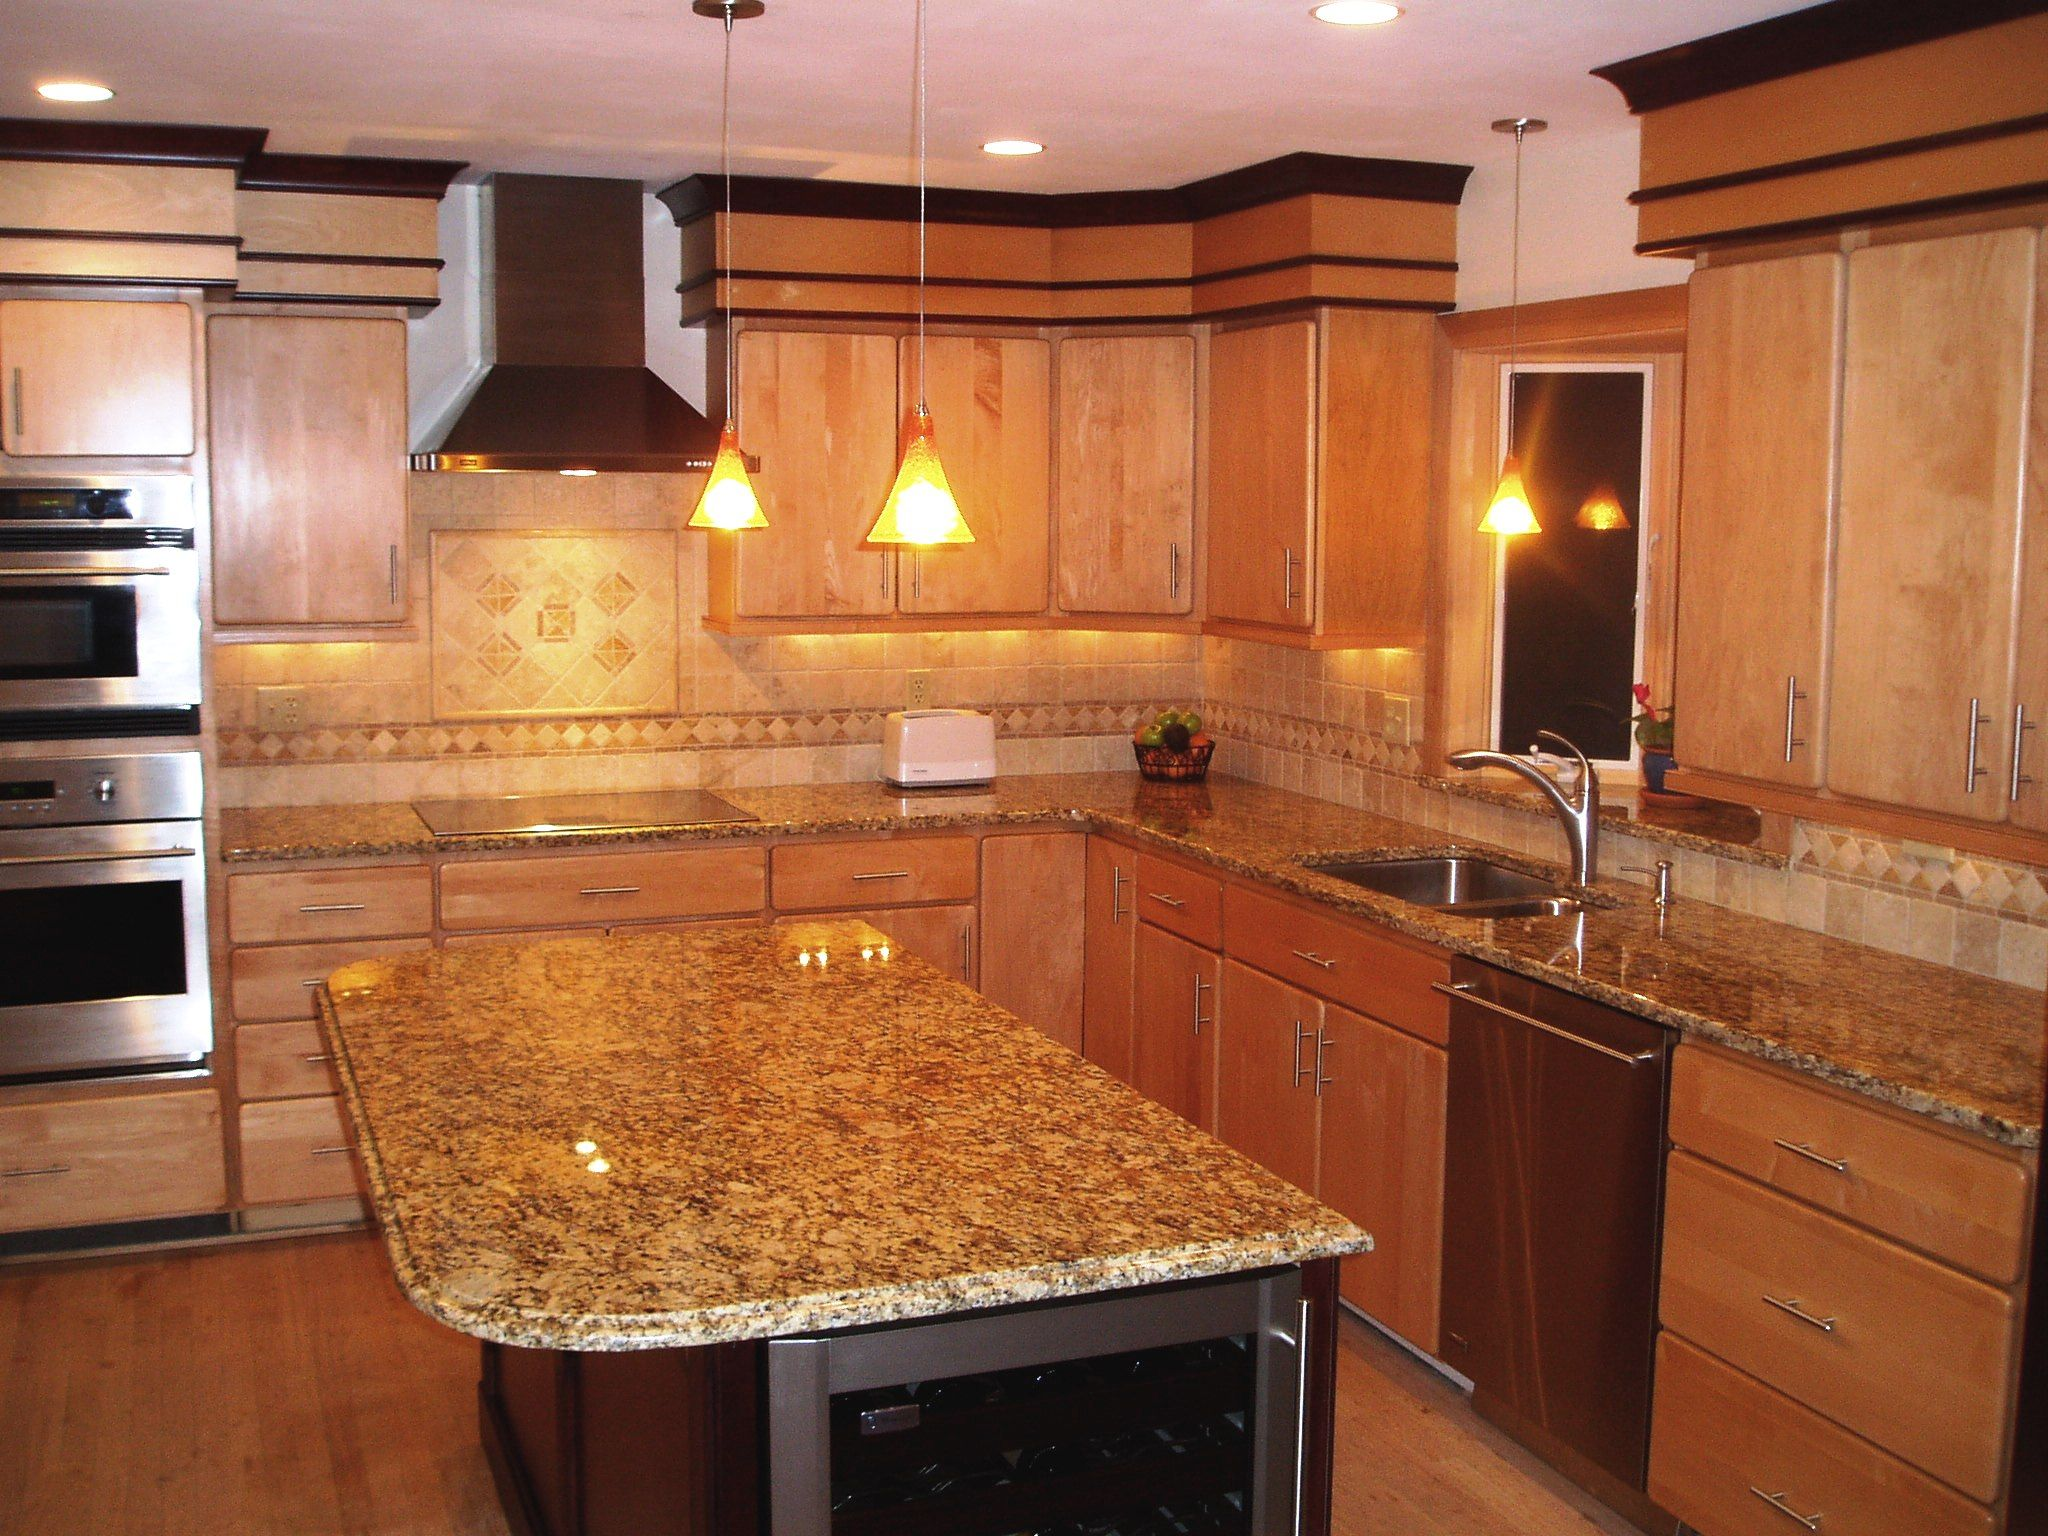 Brown Granite Tile Countertops Colors Set On The Kitchen Island And Set  With Small Lamps With